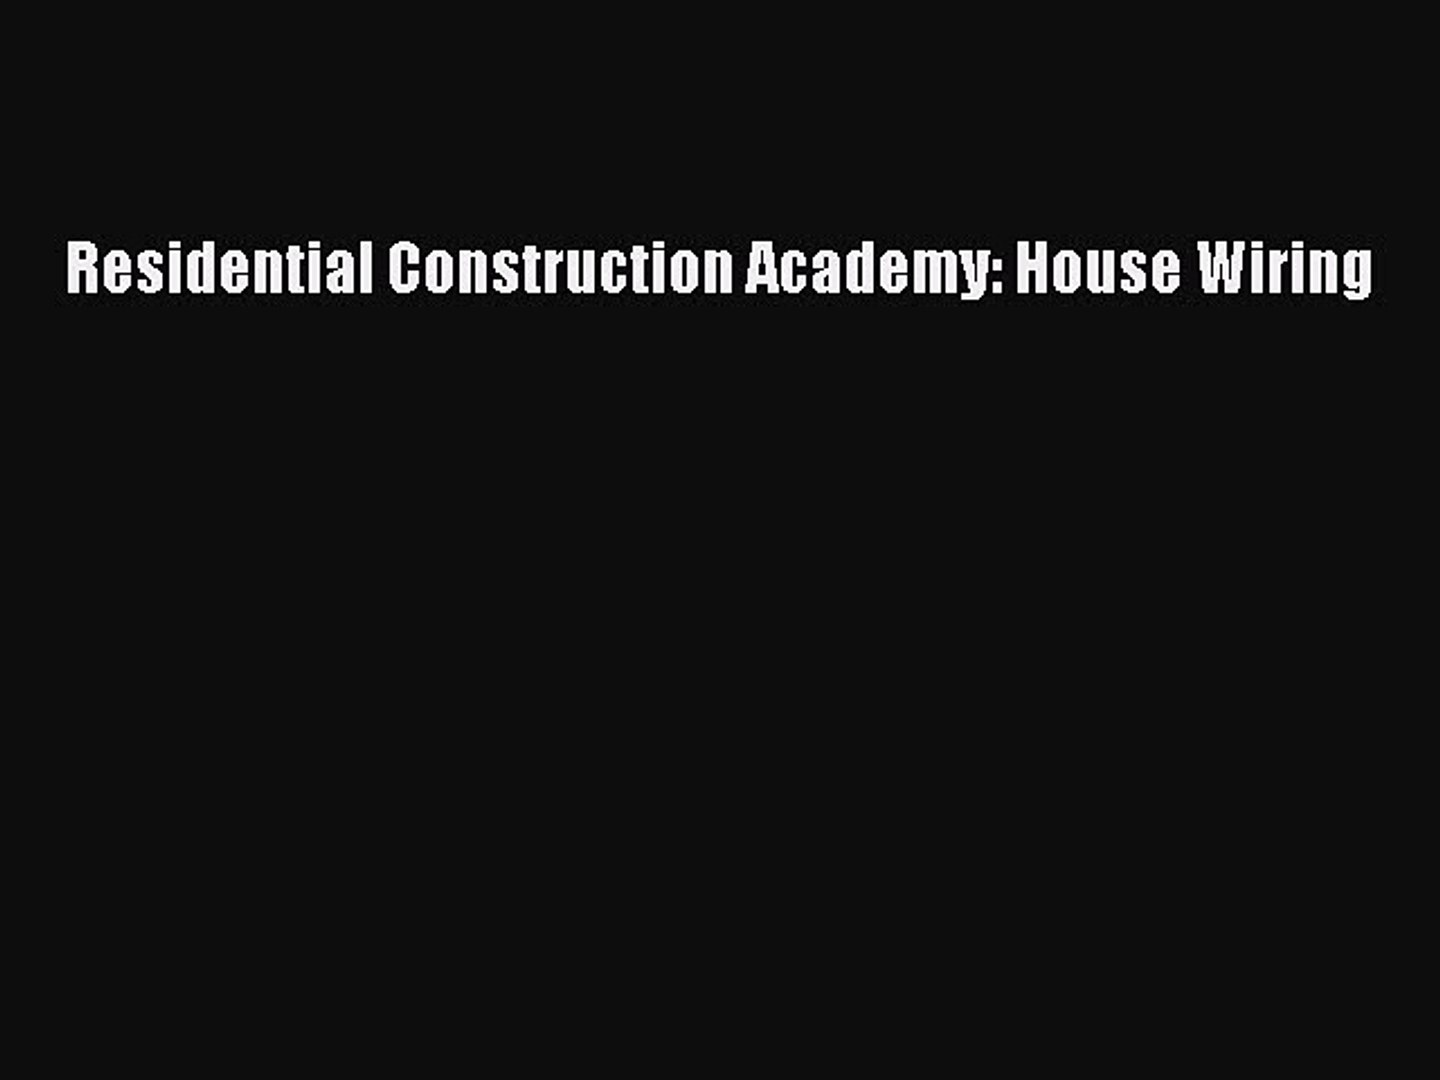 PDF Download) Residential Construction Academy: House Wiring PDF - video  dailymotionDailymotion